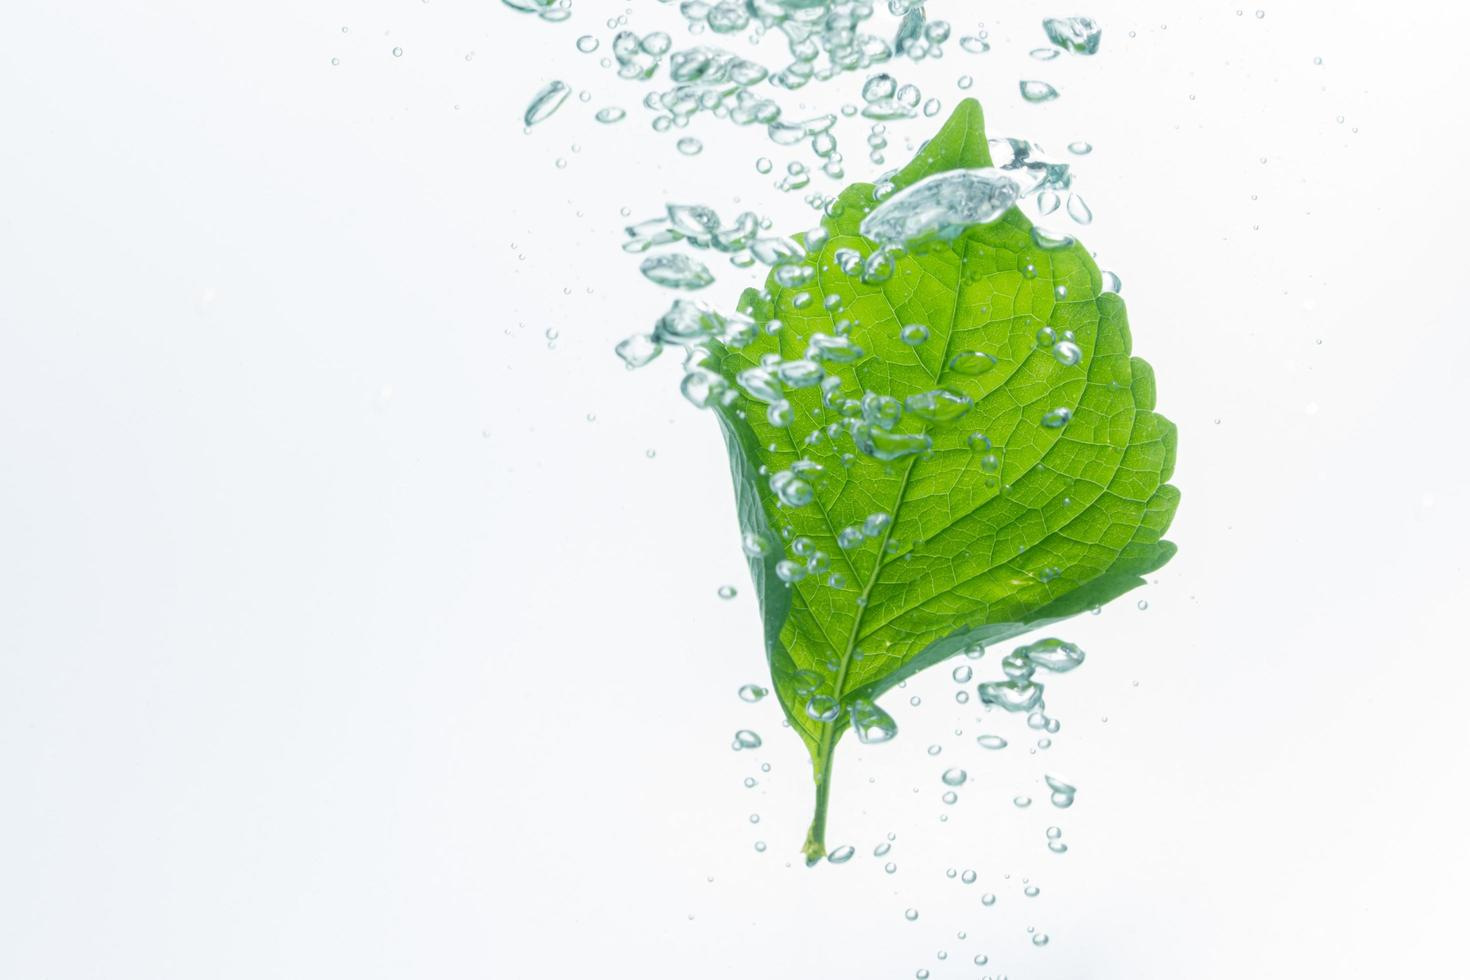 Green leaf and bubbles in the water photo